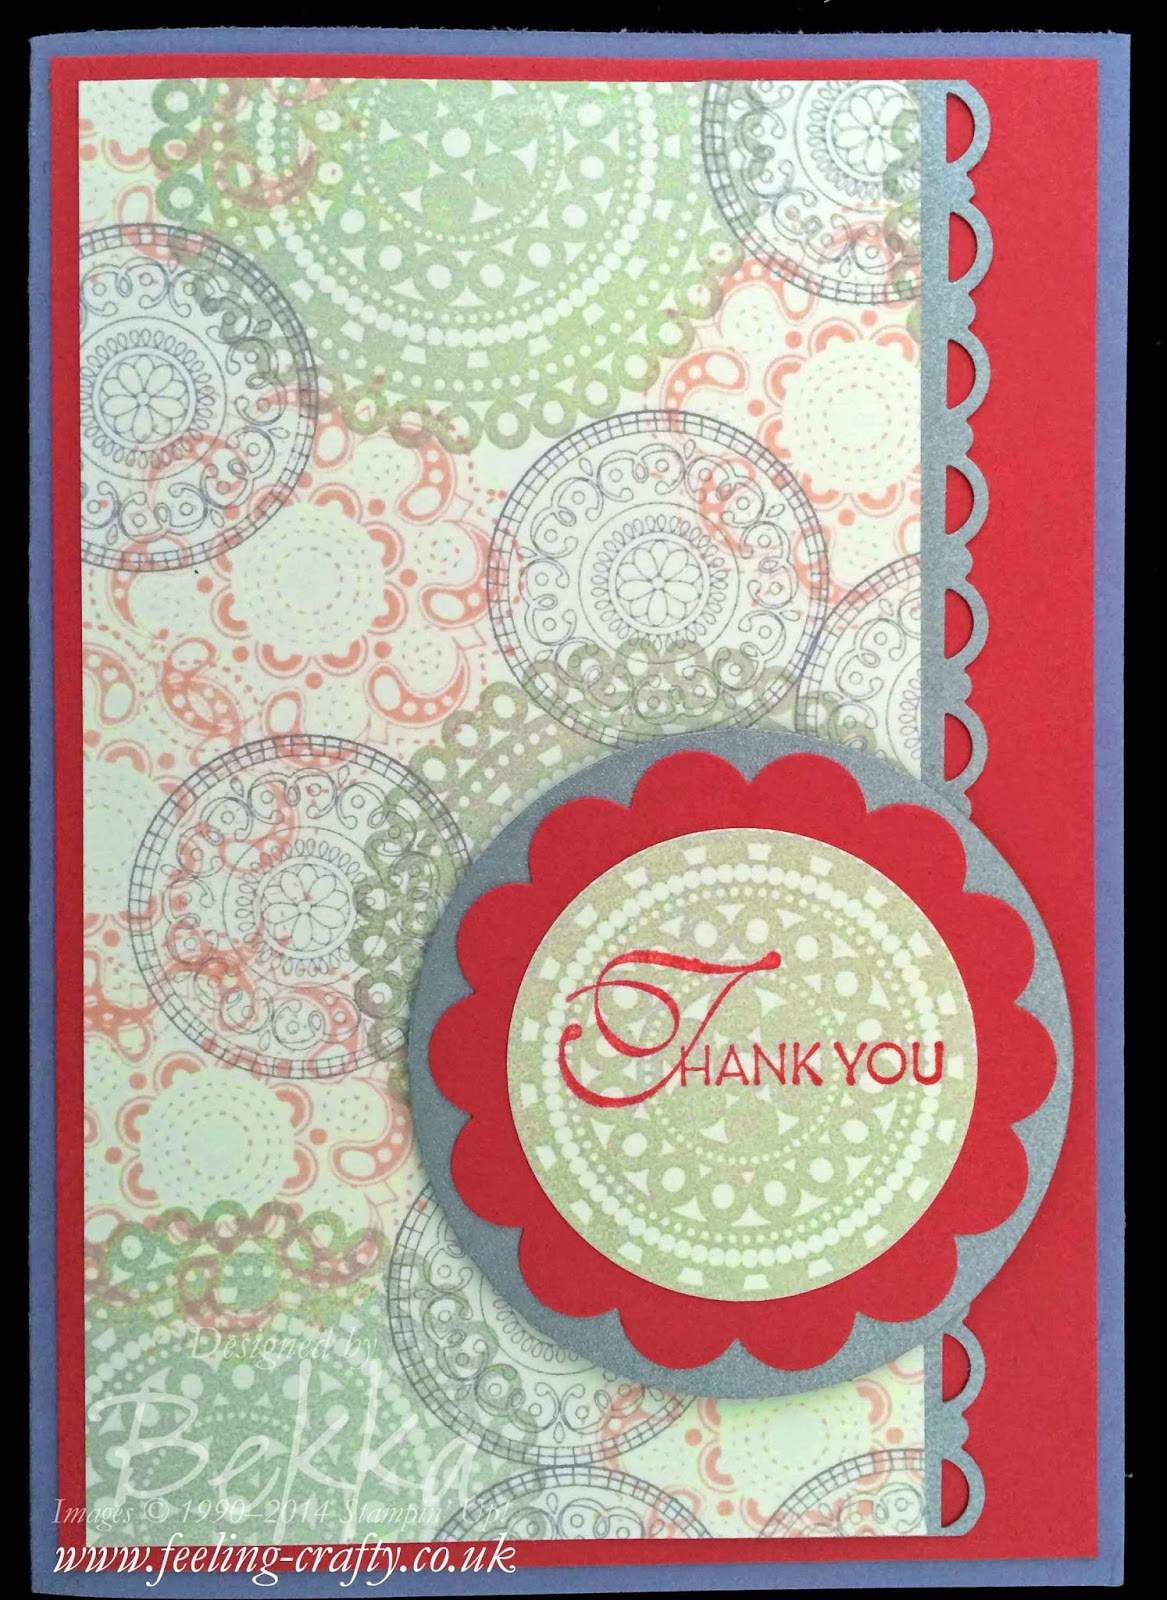 Lacy and Lovely Card Making Class Card from Feeling Crafty - check out their classes they look great!